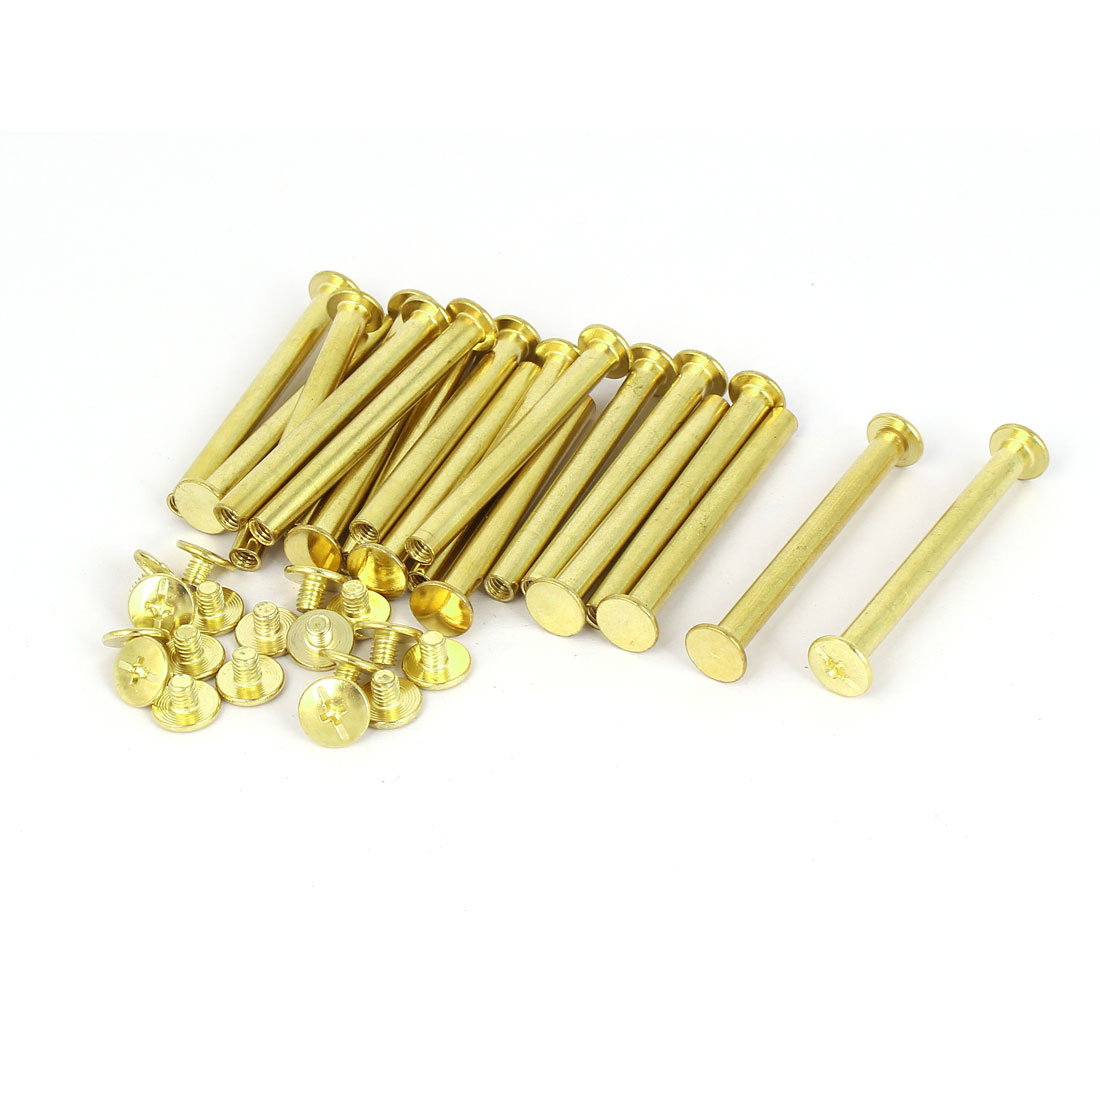 5mmx50mm Brass Plated Chicago Screws Binding Posts Docking Rivet 20pcs